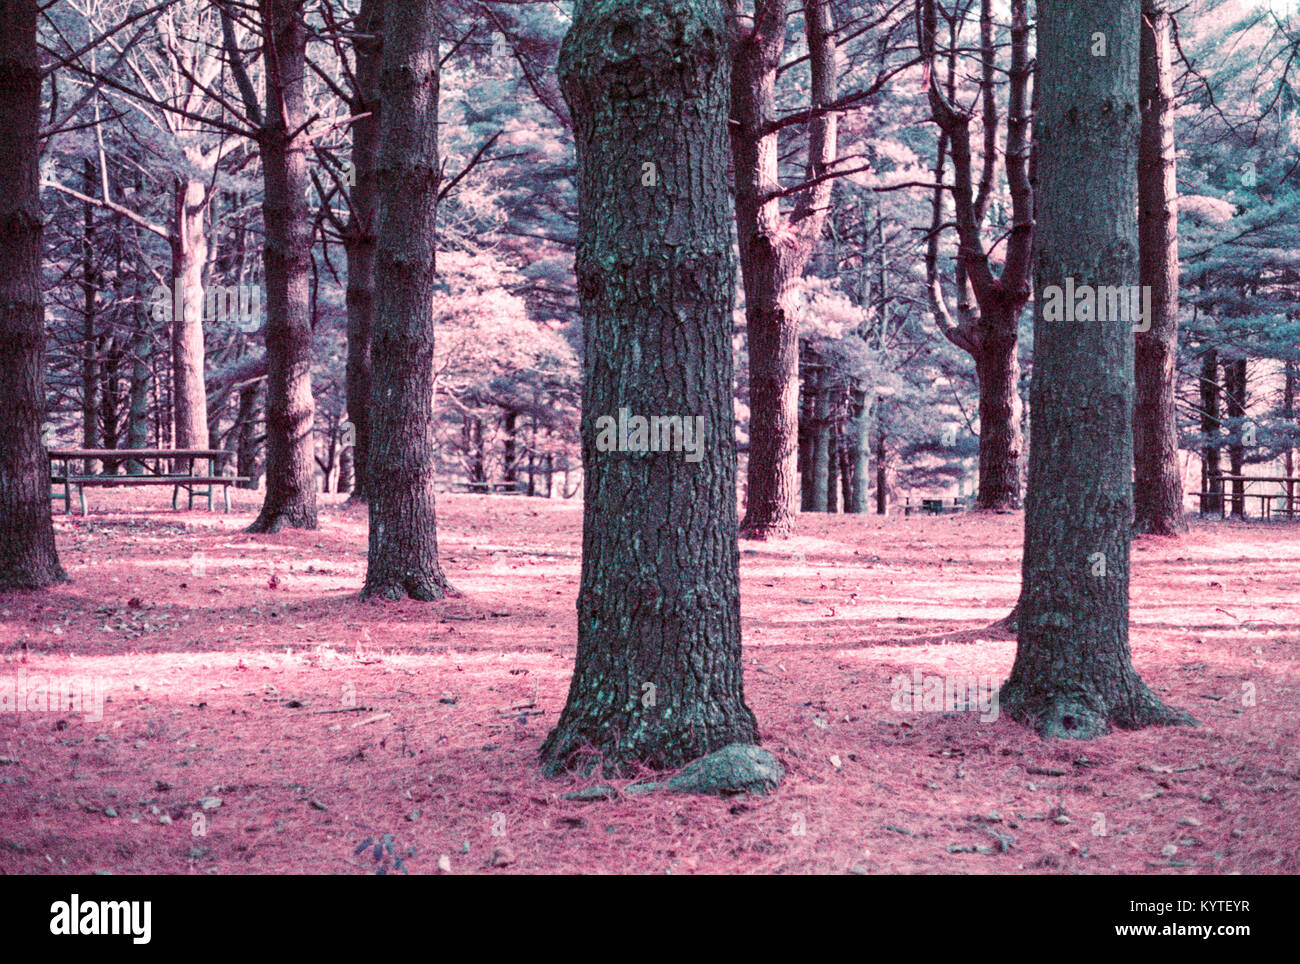 Surreal purple forest filled with rees - Stock Image